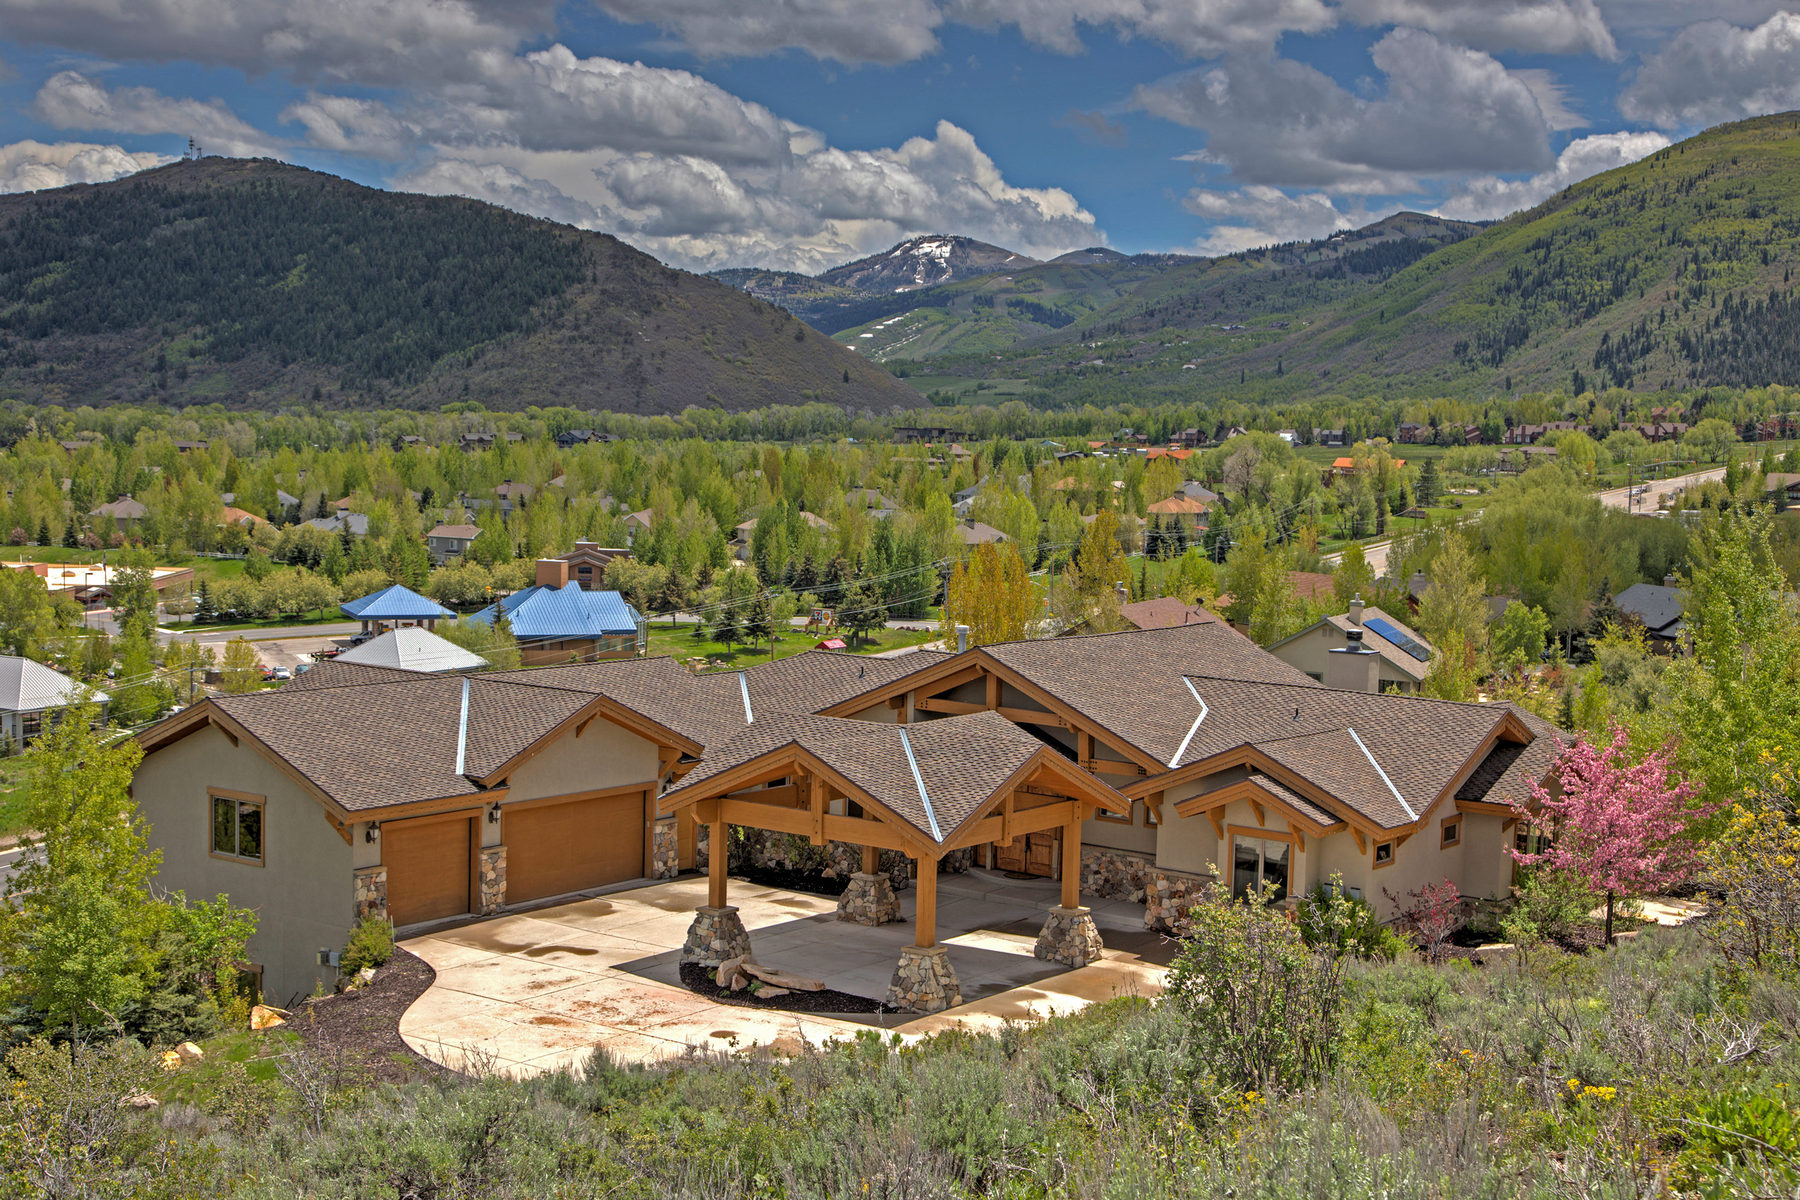 Single Family Home for Sale at Less Than One Mile to N. America's Largest Ski Resort, Huge Views, Ideal Floorpl 1978 Kidd Circle Park City, Utah 84098 United States